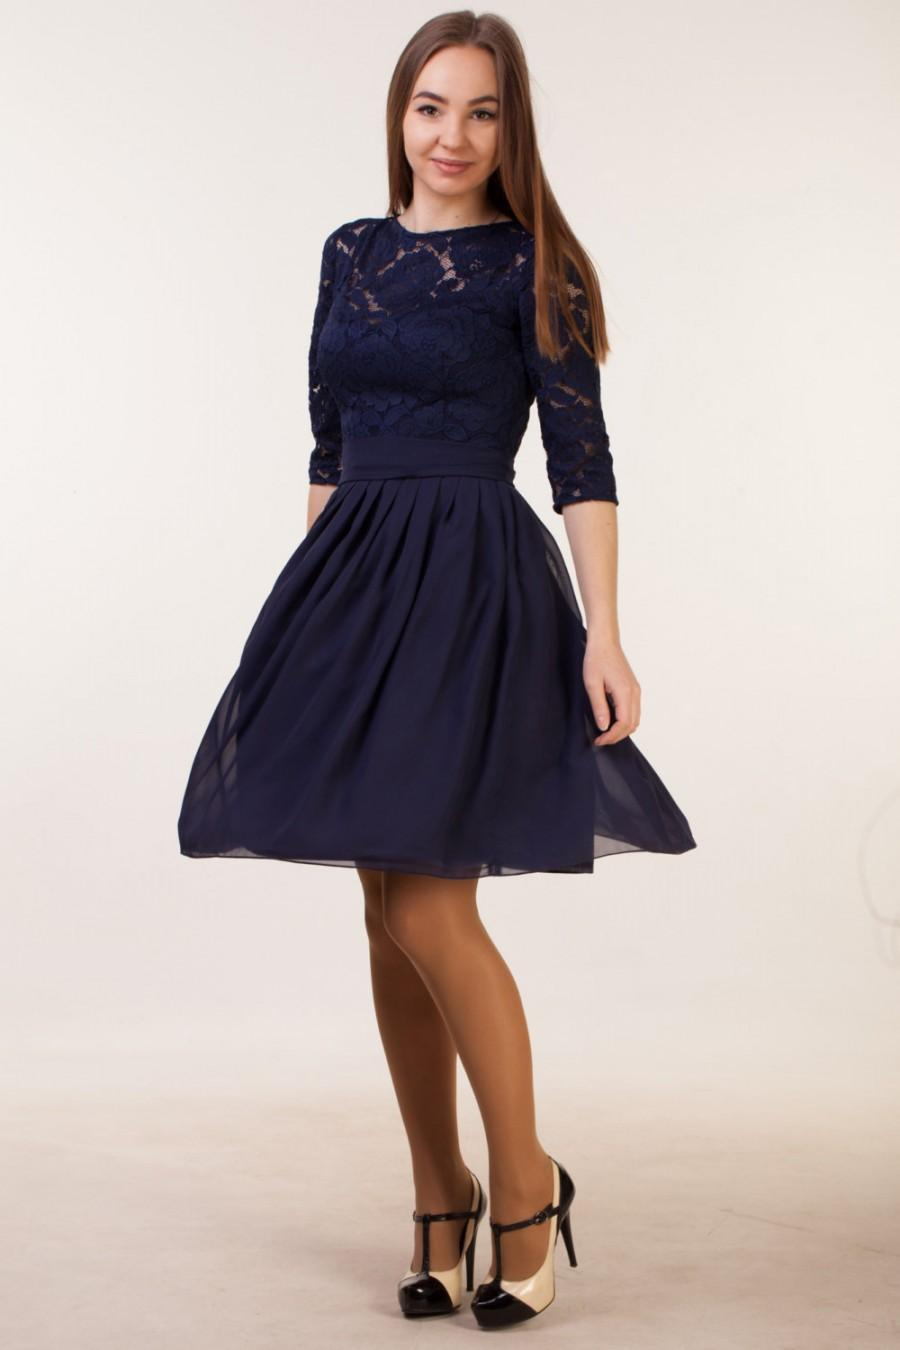 d6237843f620 Short navy blue dress with sleeves Navy blue bridesmaid dress with sleeves Navy  blue cocktail dress Navy party dress Navy blue lace dress